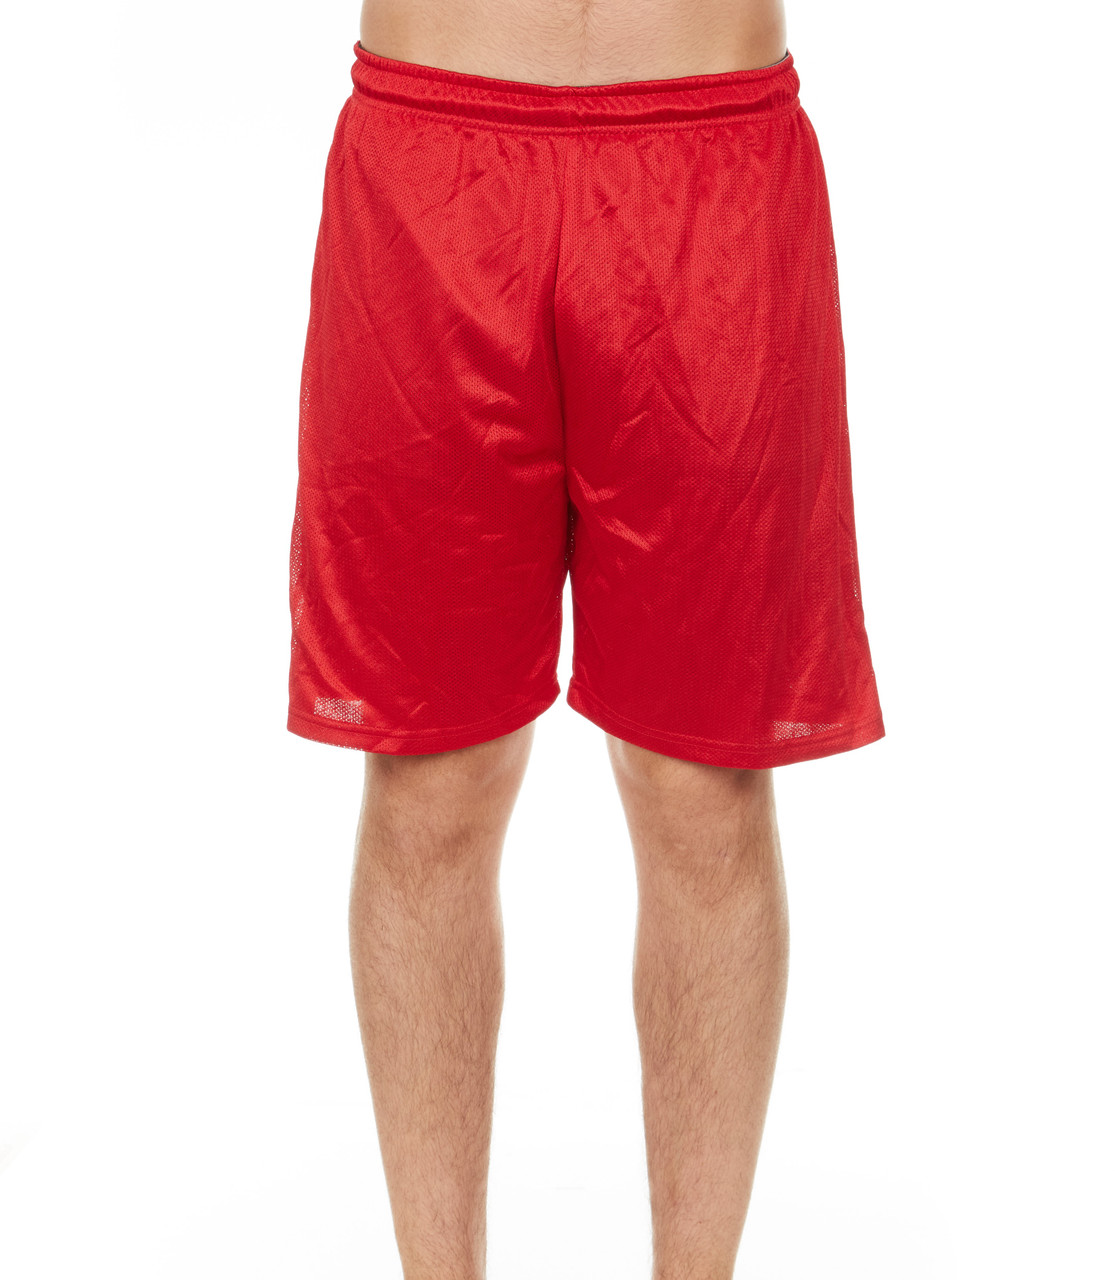 Men's Mystery Solid Active Athletic Performance Shorts - 4 Pack